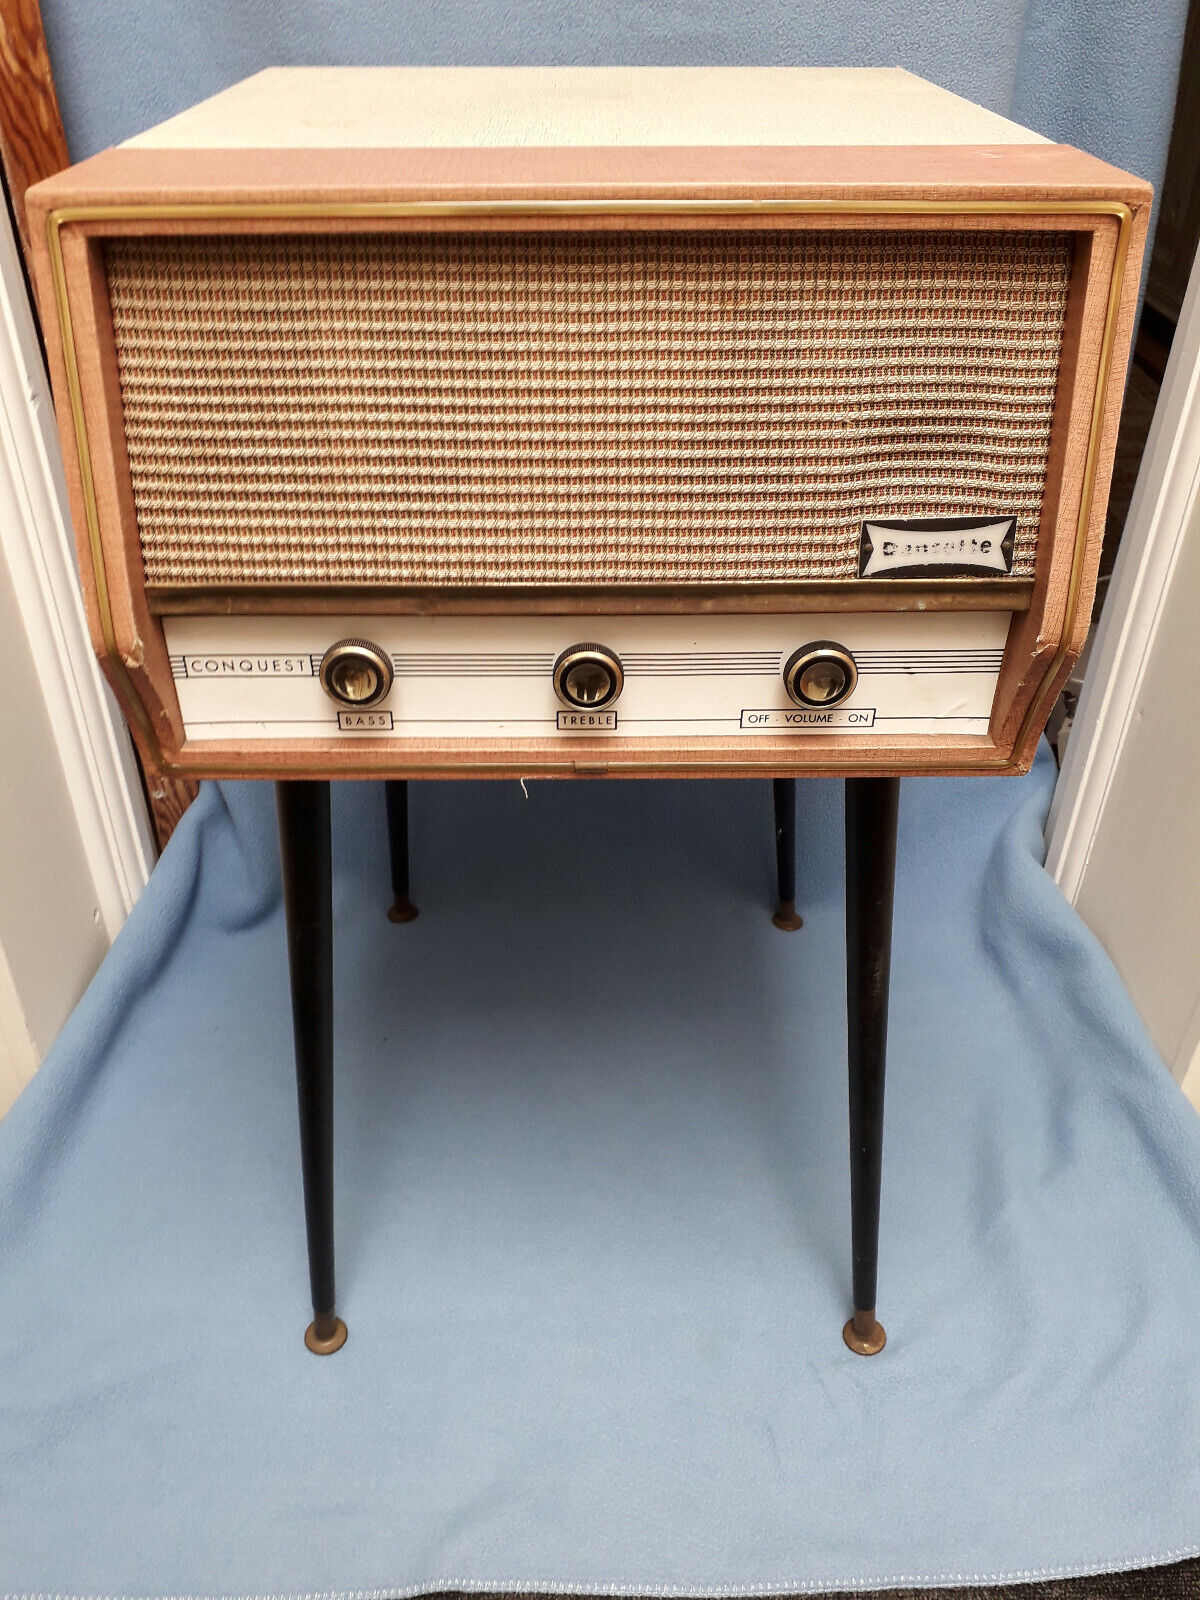 Vintage Retro Dansette Conquest Auto Record Player with Legs - Working.